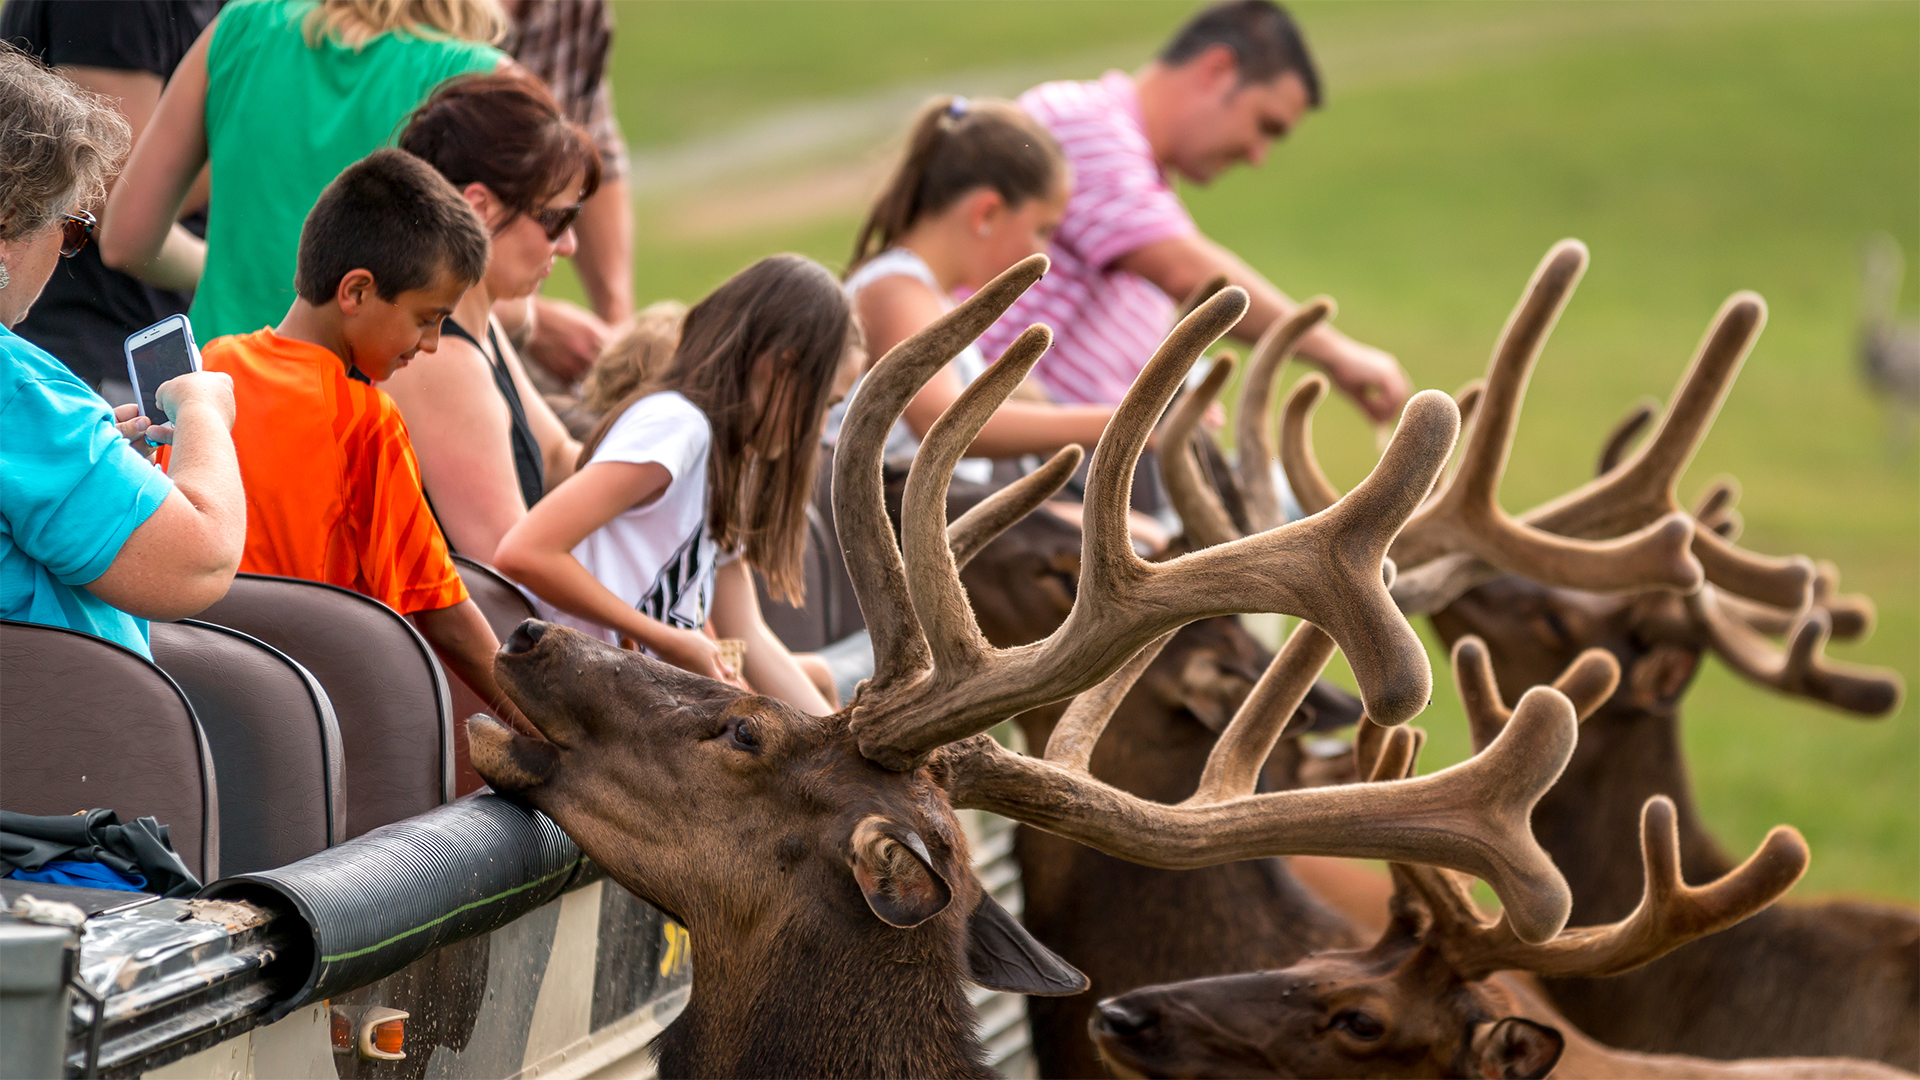 Touch and feed real animals at Lake Tobias Wildlife Park